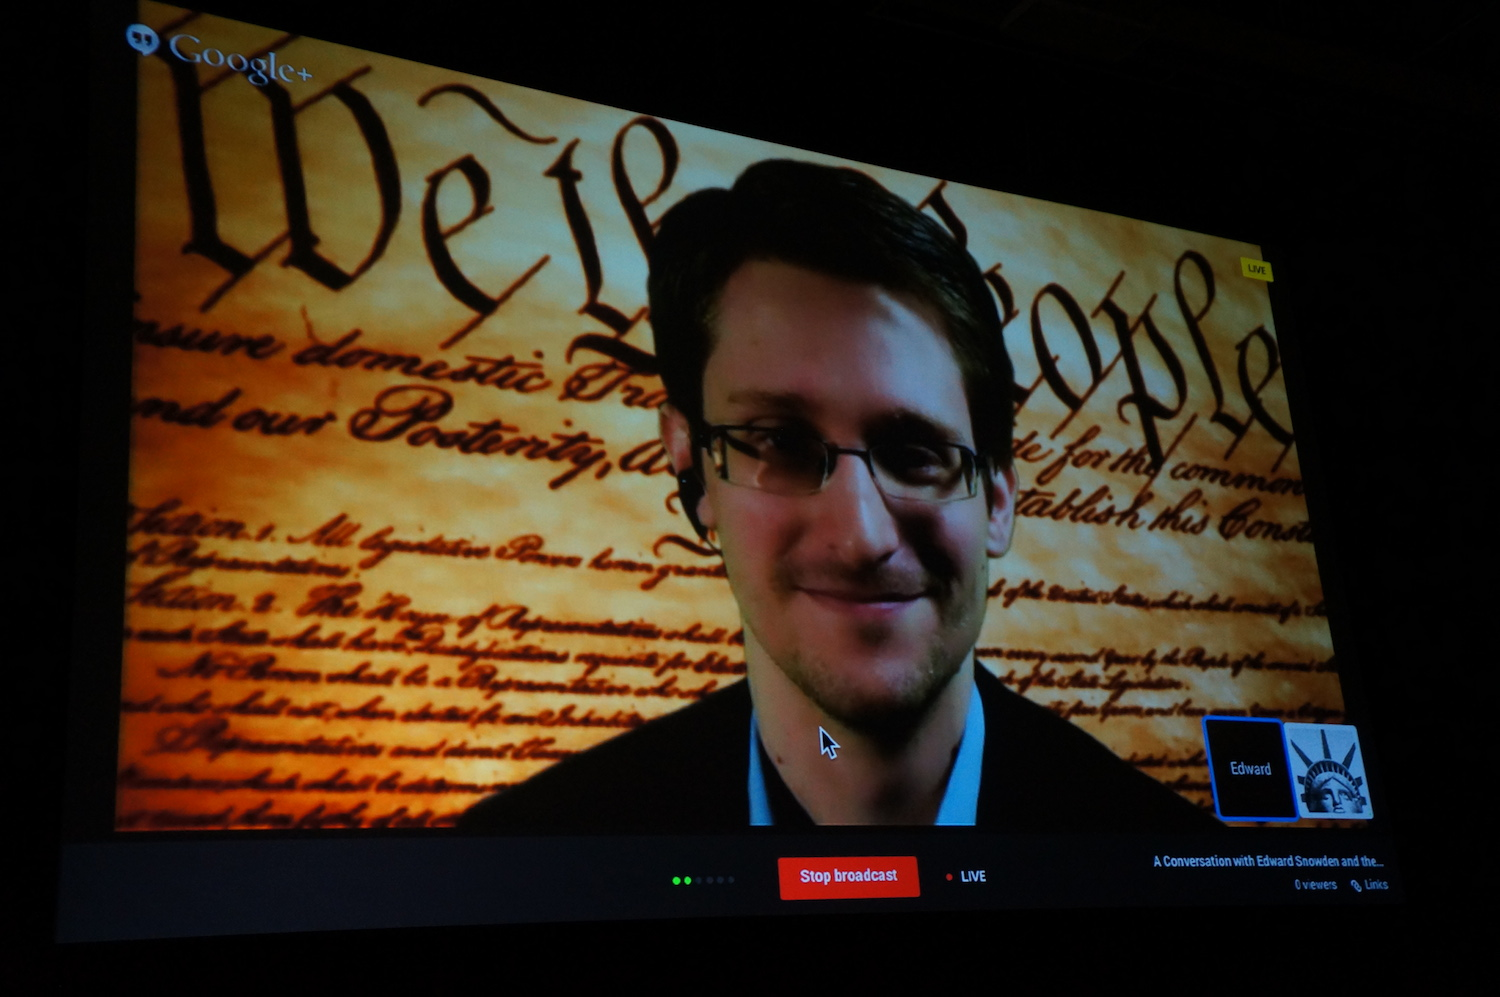 Edward Snowden speaks on an Internet video connection at SXSW.